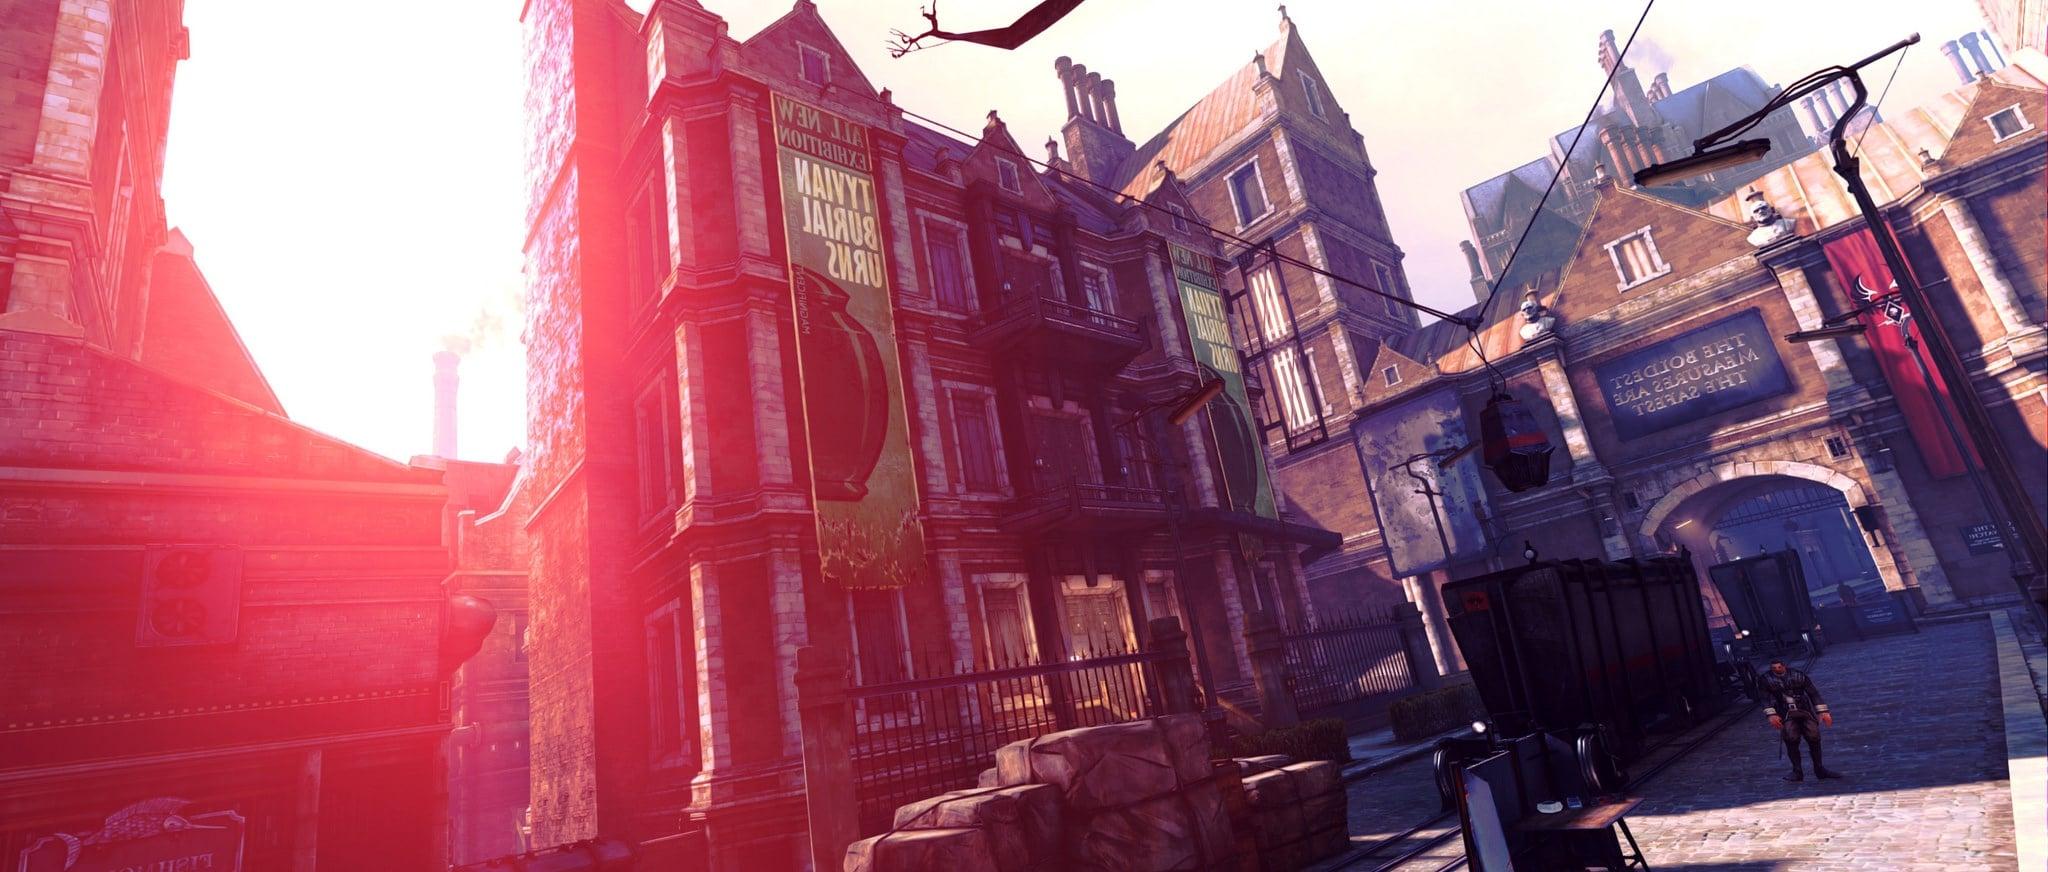 Awesome Dishonored 2 city pictures